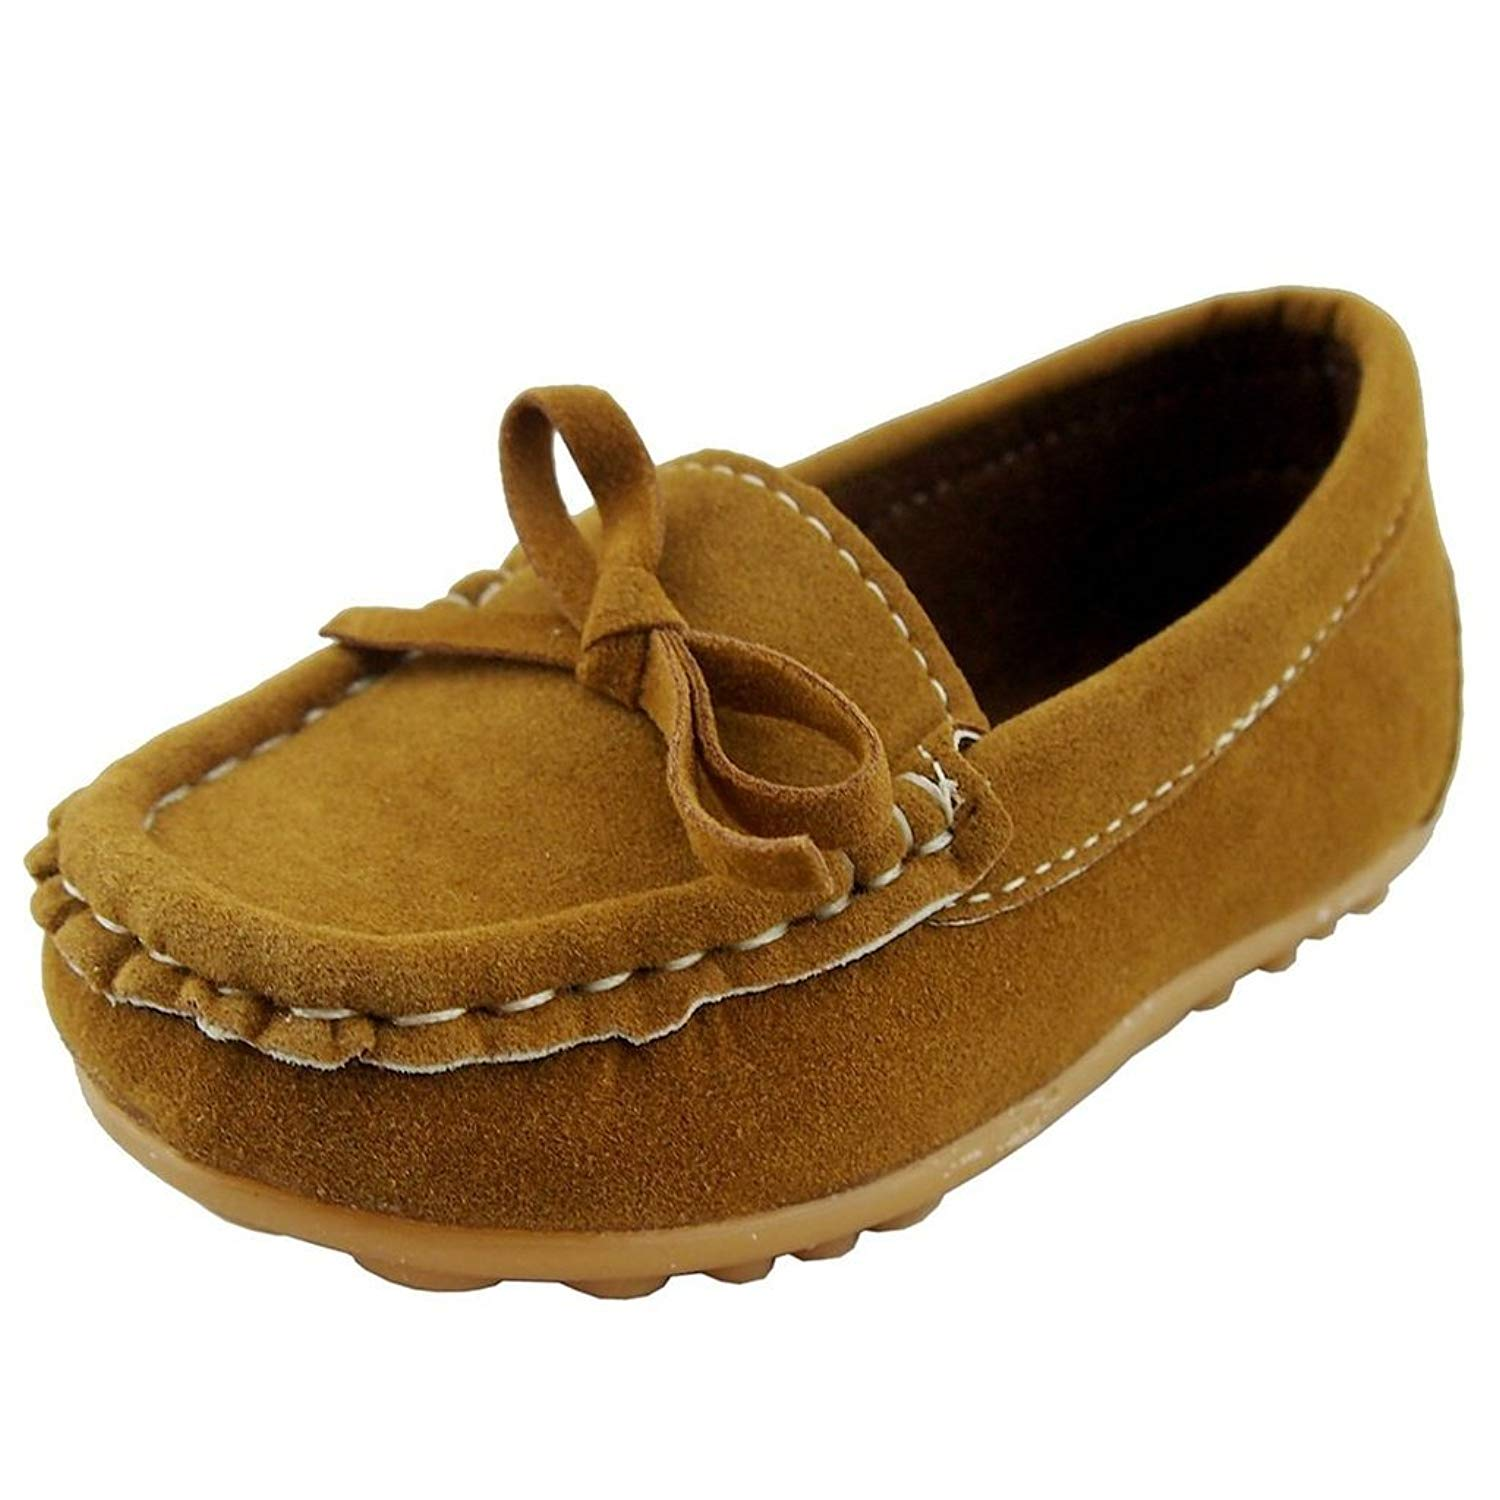 379412cfbbc Get Quotations · iLory Boy s Girl s Casual Suede Leather Slip-on Loafers  Oxford Flat Boat Shoes Toddler Shoes